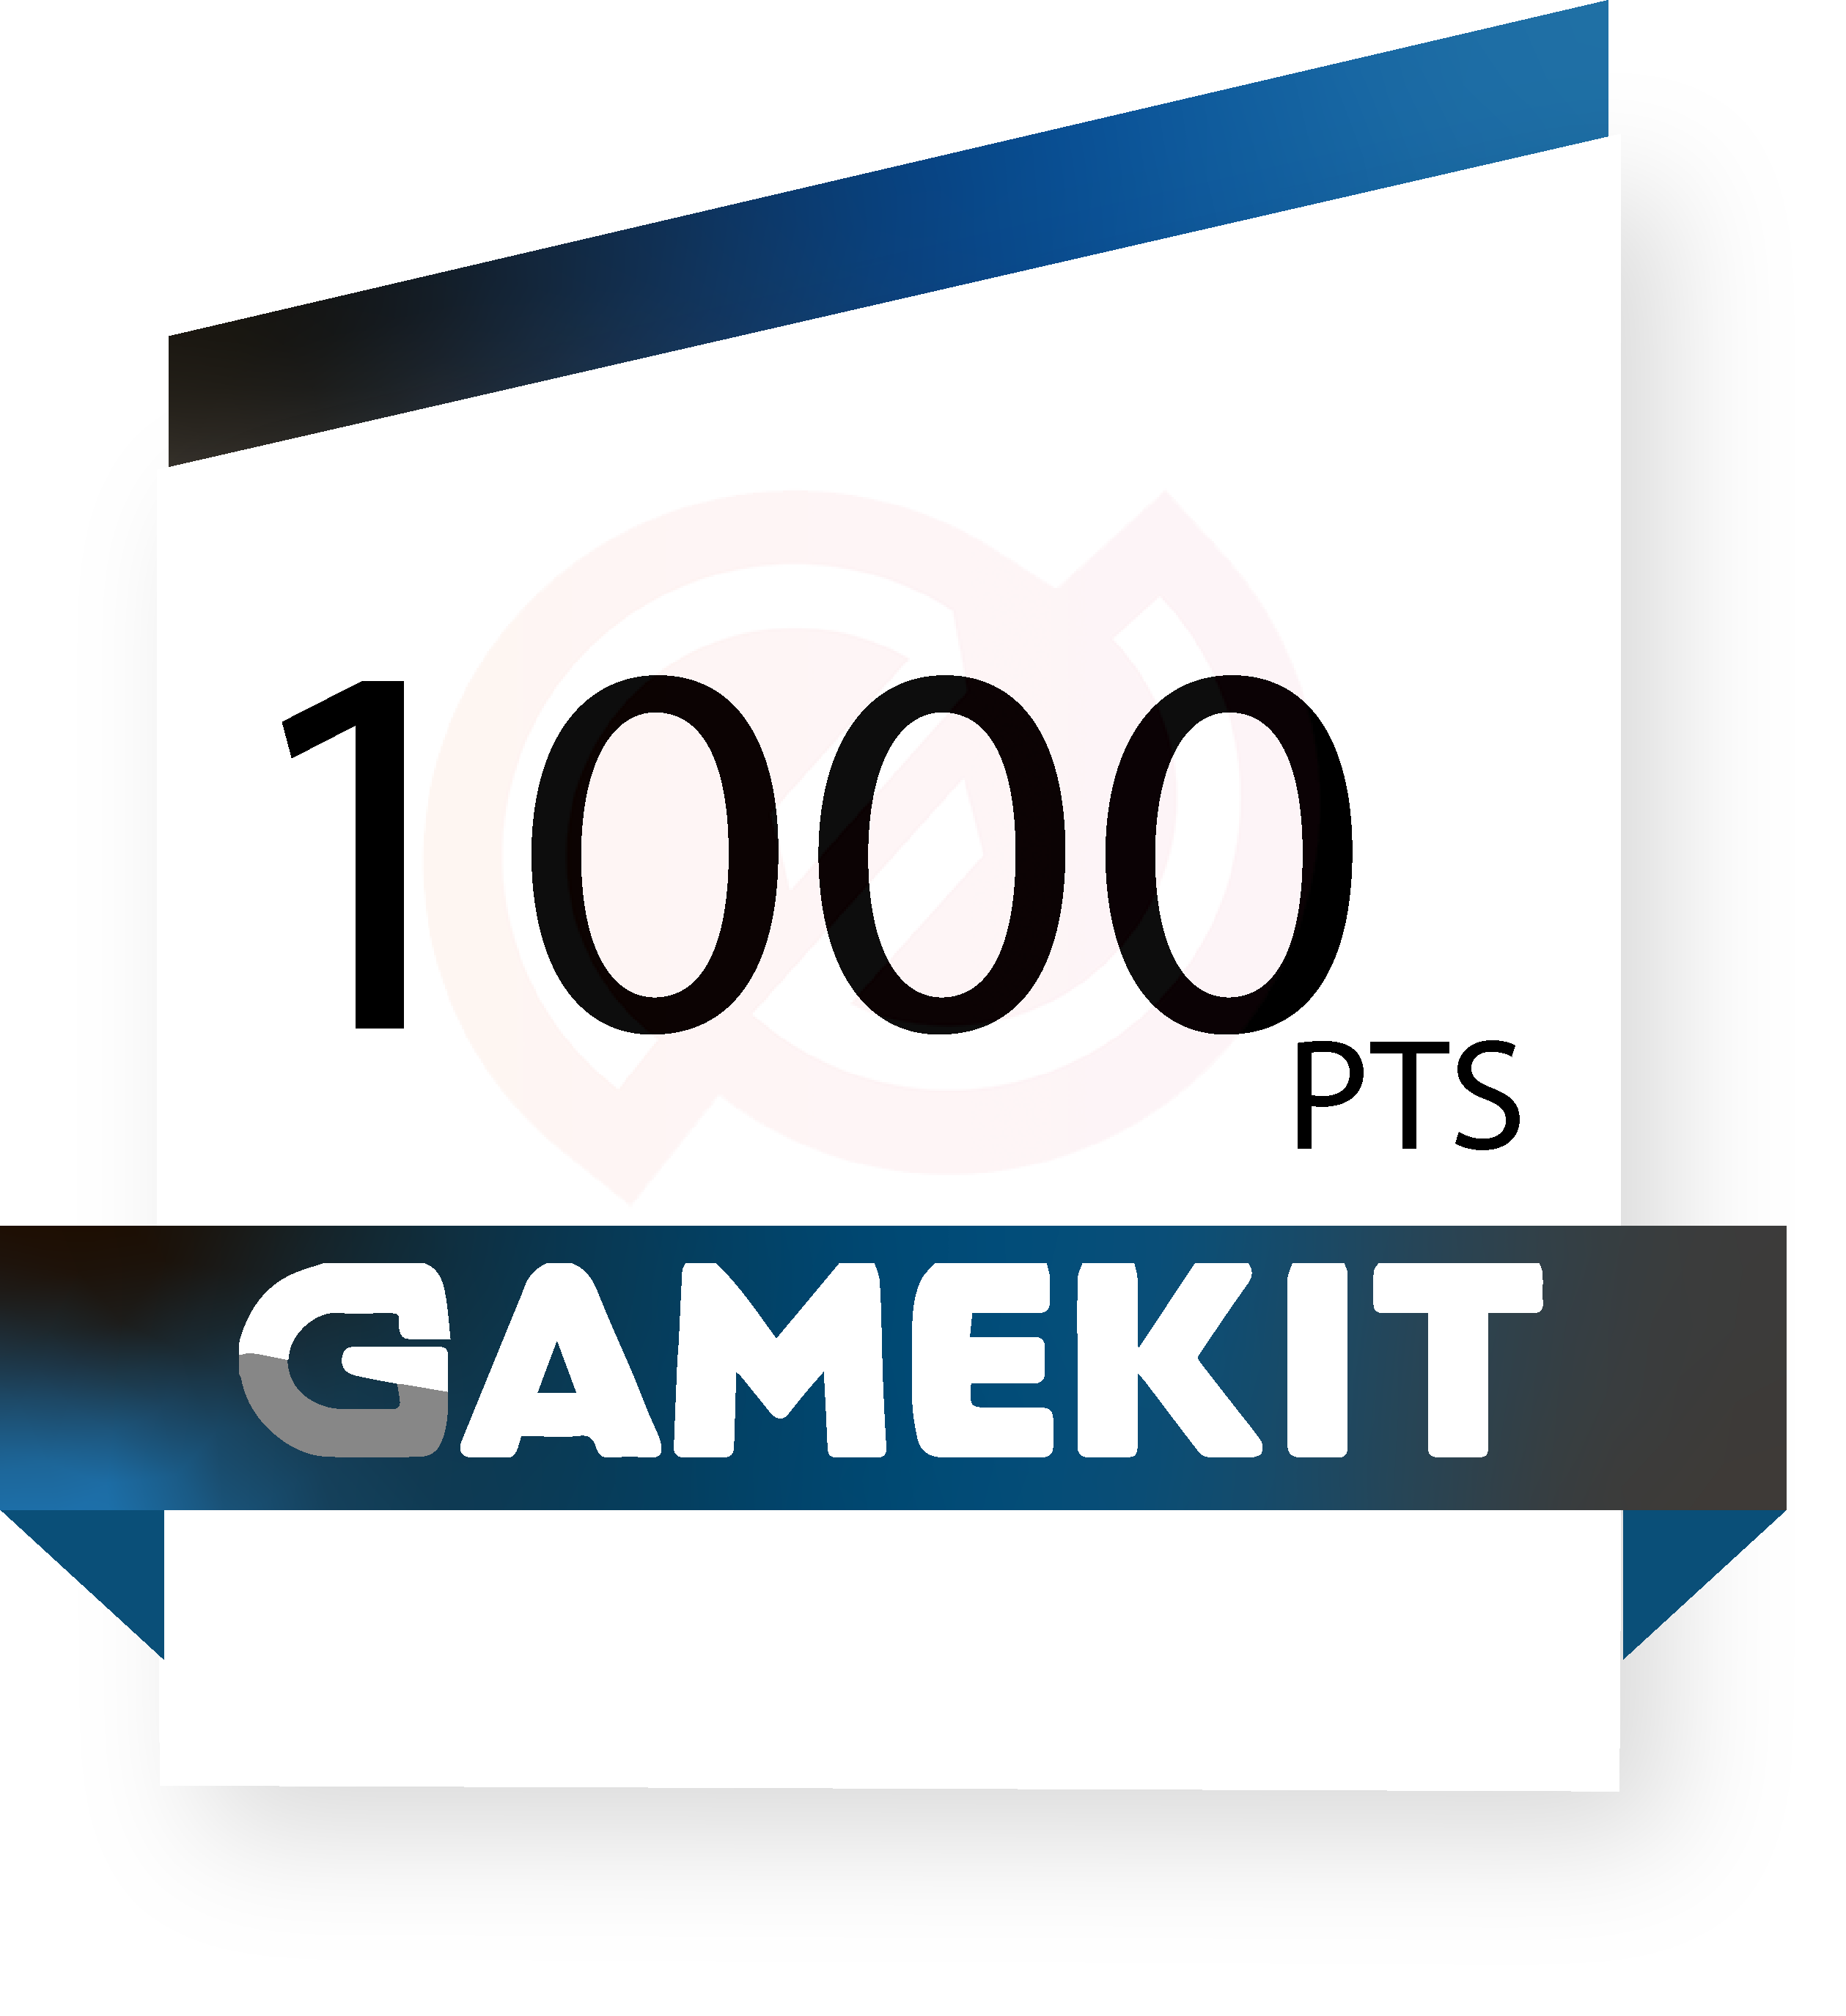 gamekit-1000-points